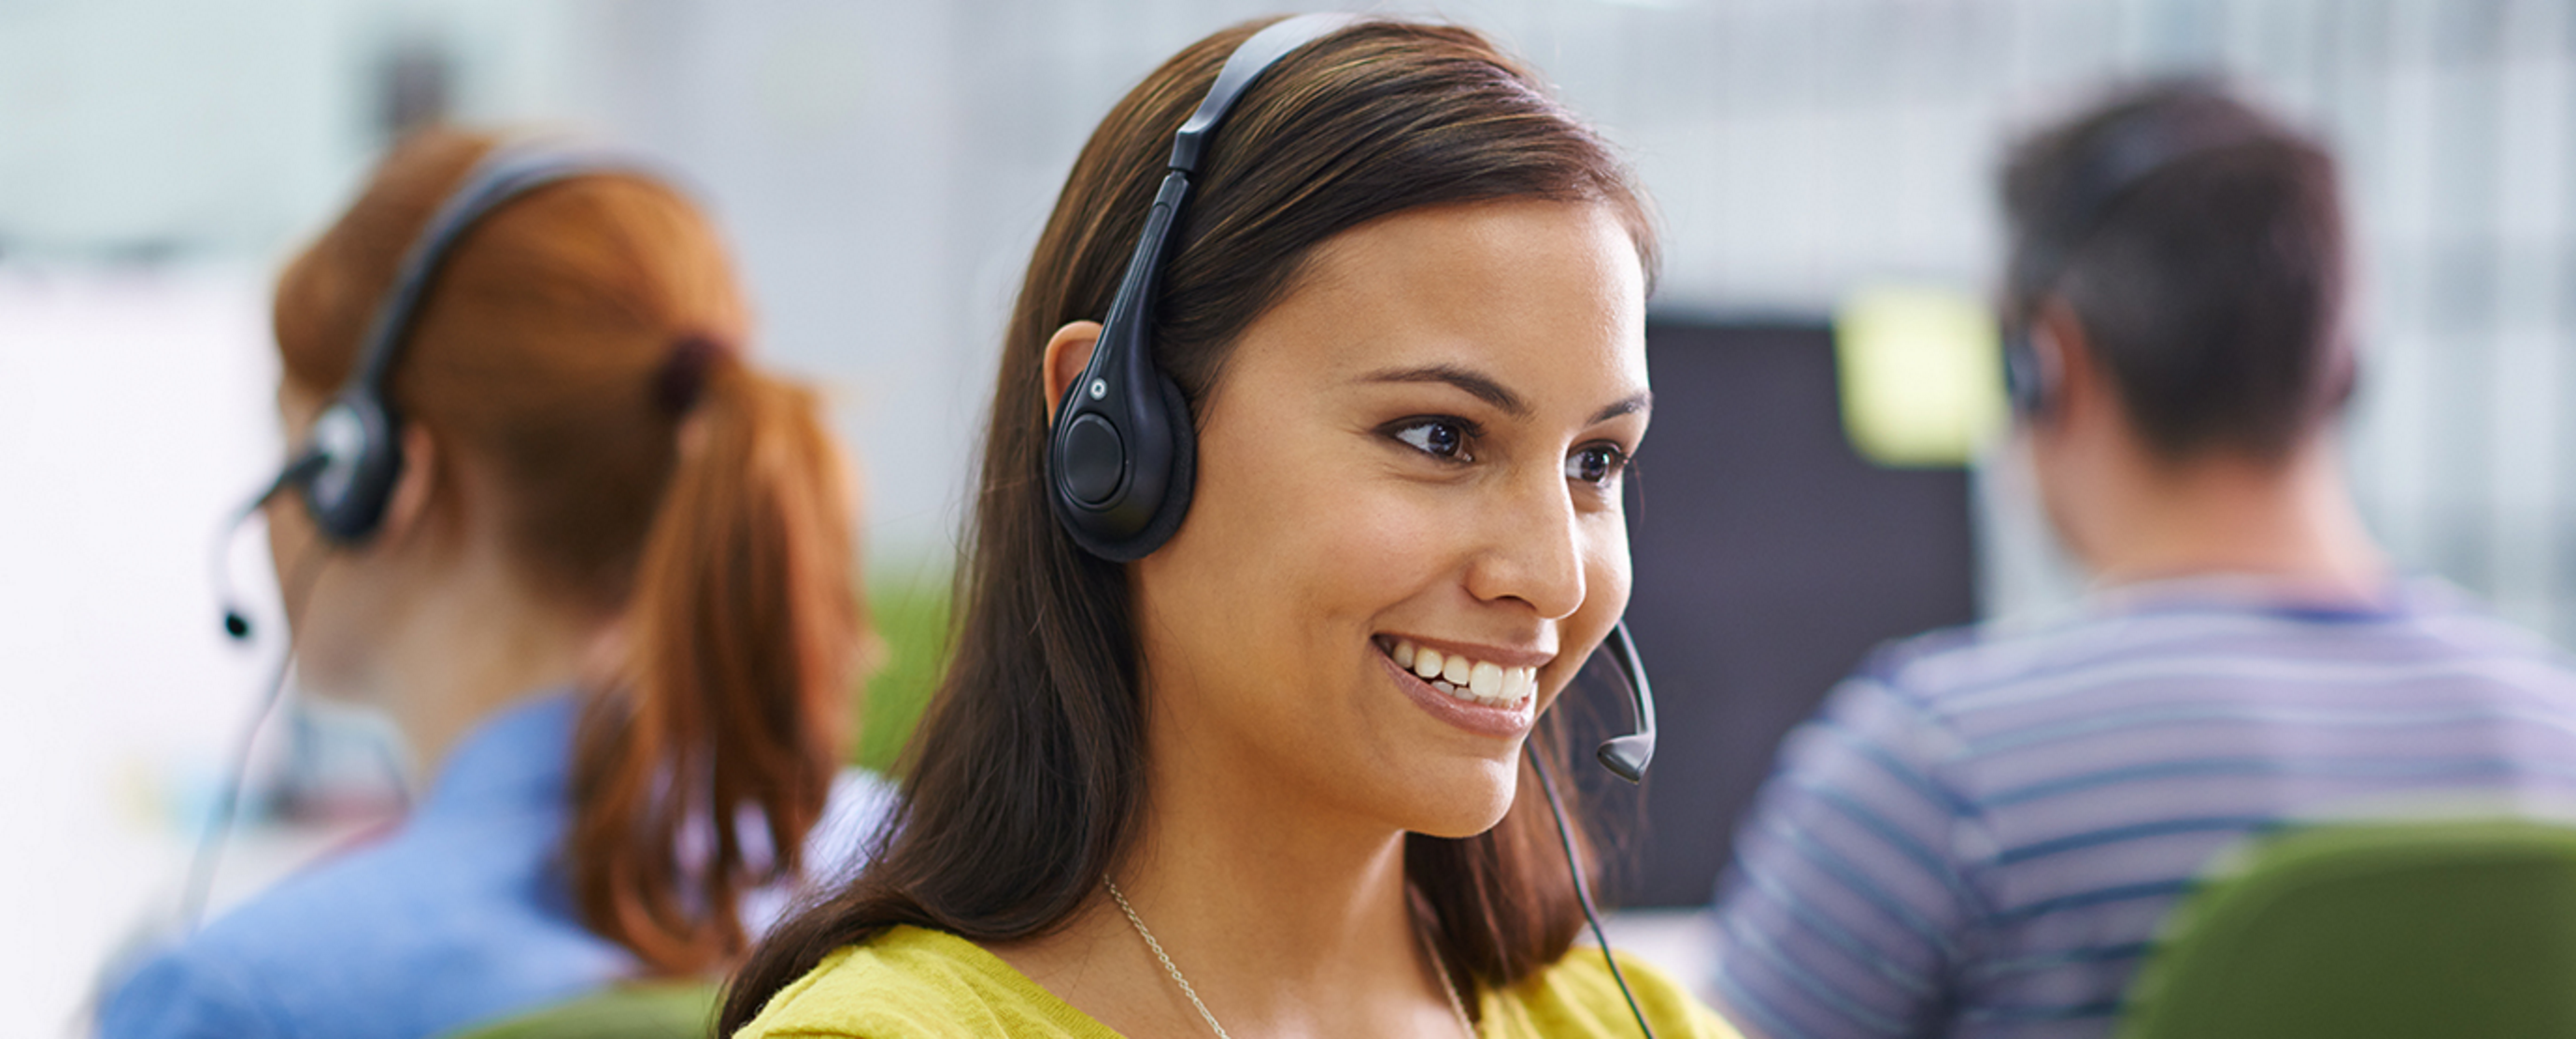 Smiling woman with headset at a call center.